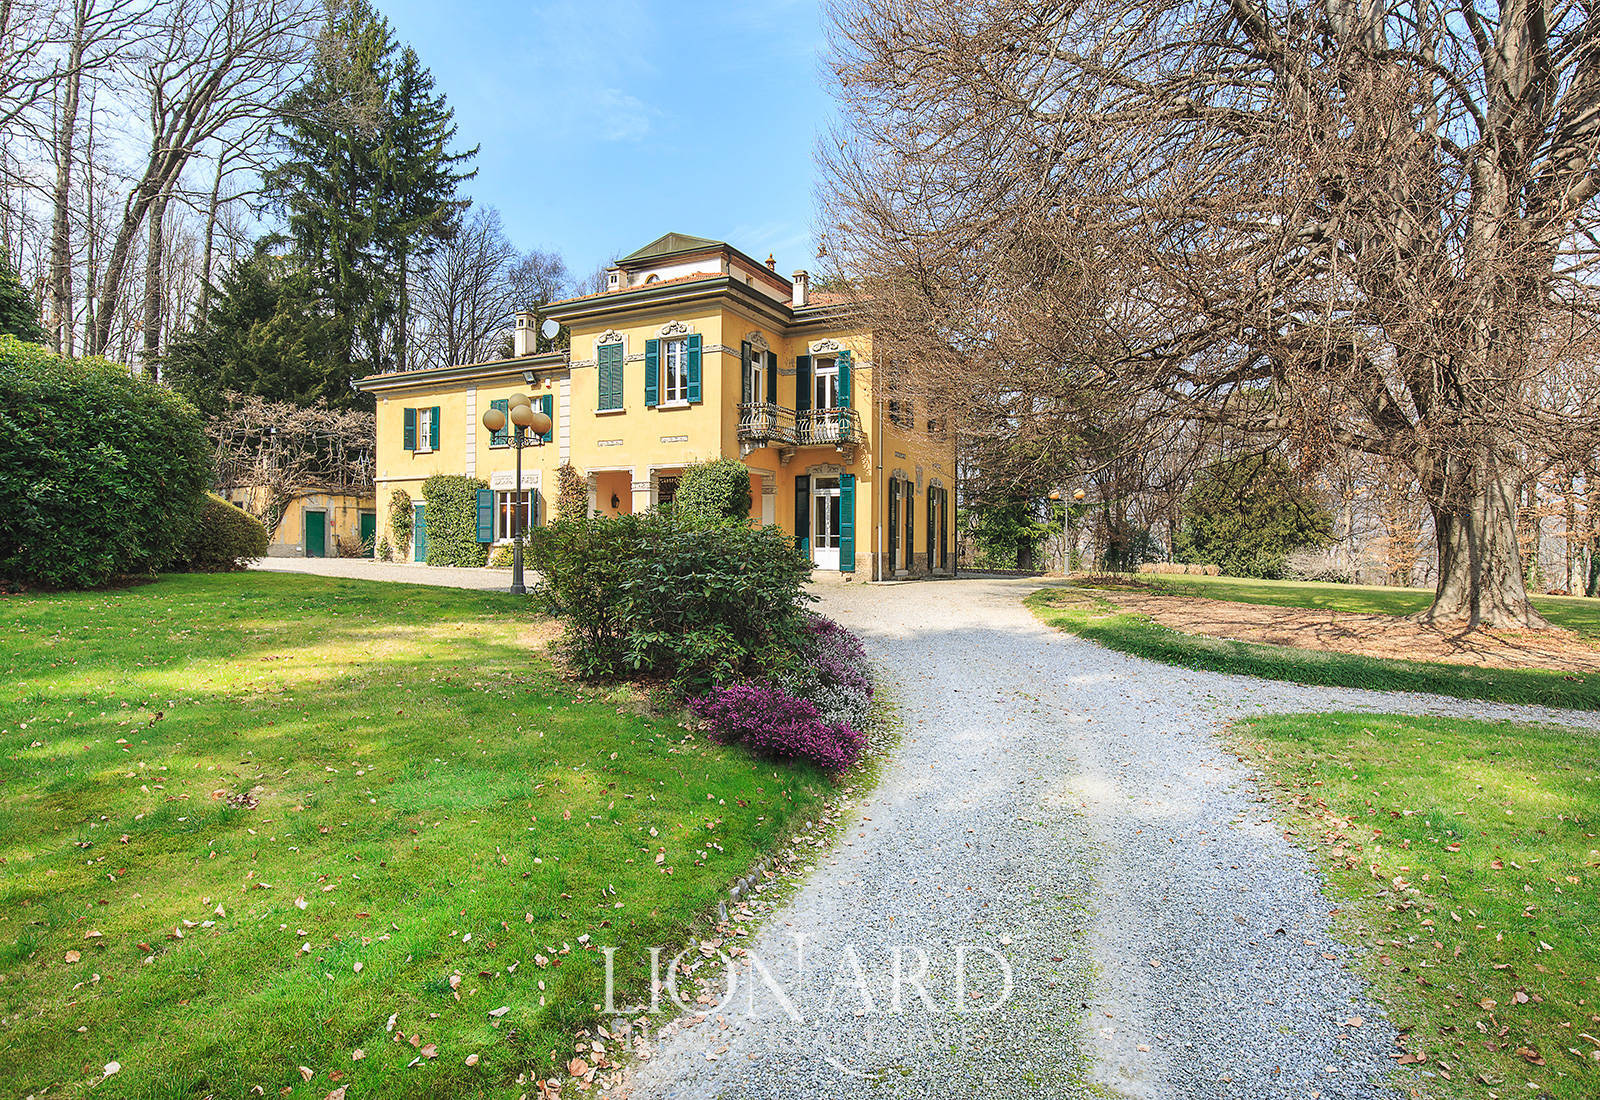 prestigious_real_estate_in_italy?id=1931